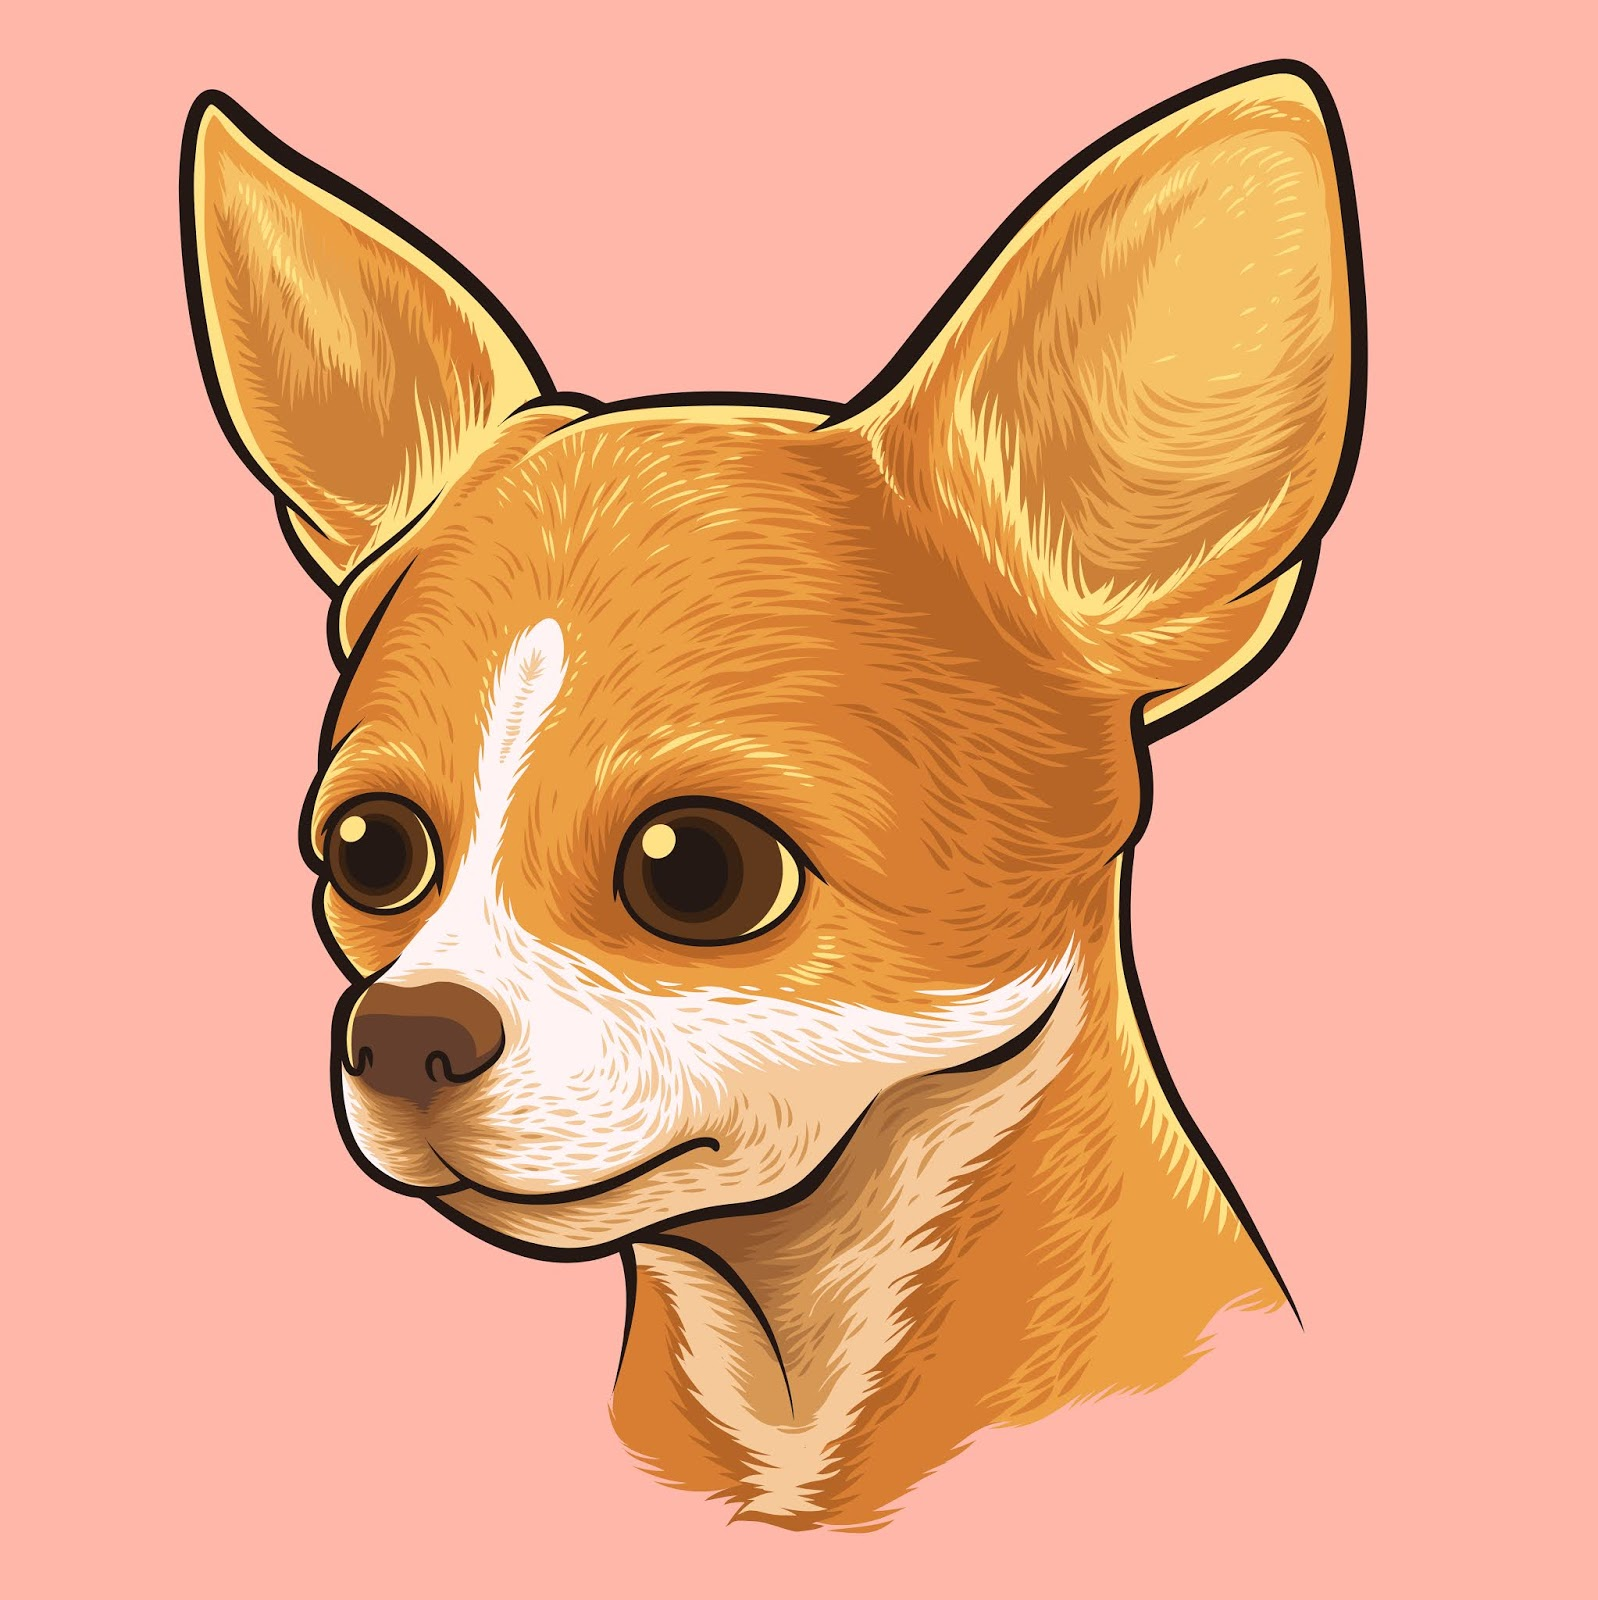 Chihuahua Dog Portrait.jpg Free Download Vector CDR, AI, EPS and PNG Formats